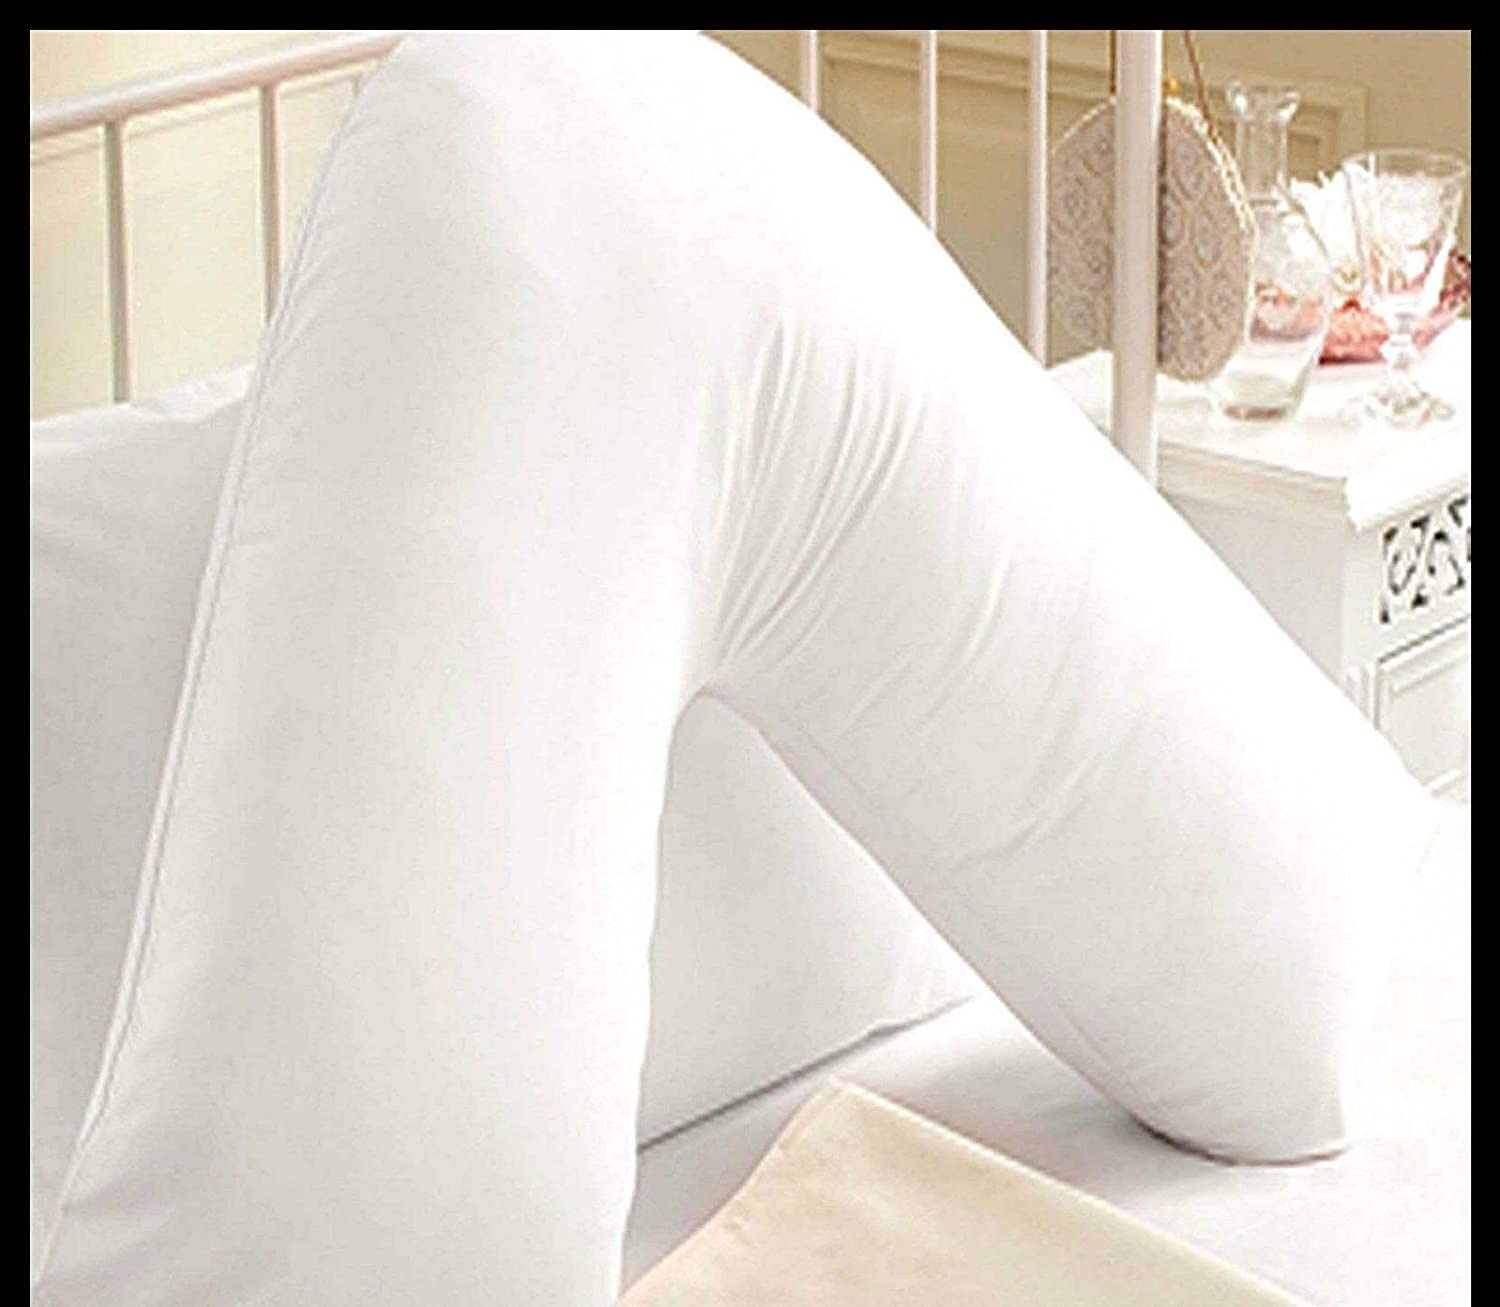 Bedding Home Super Comfy Cuddly Large Extra Filled Bolster Pillows Non-Allergic (1 x Hotel Quality Pillow) Adams